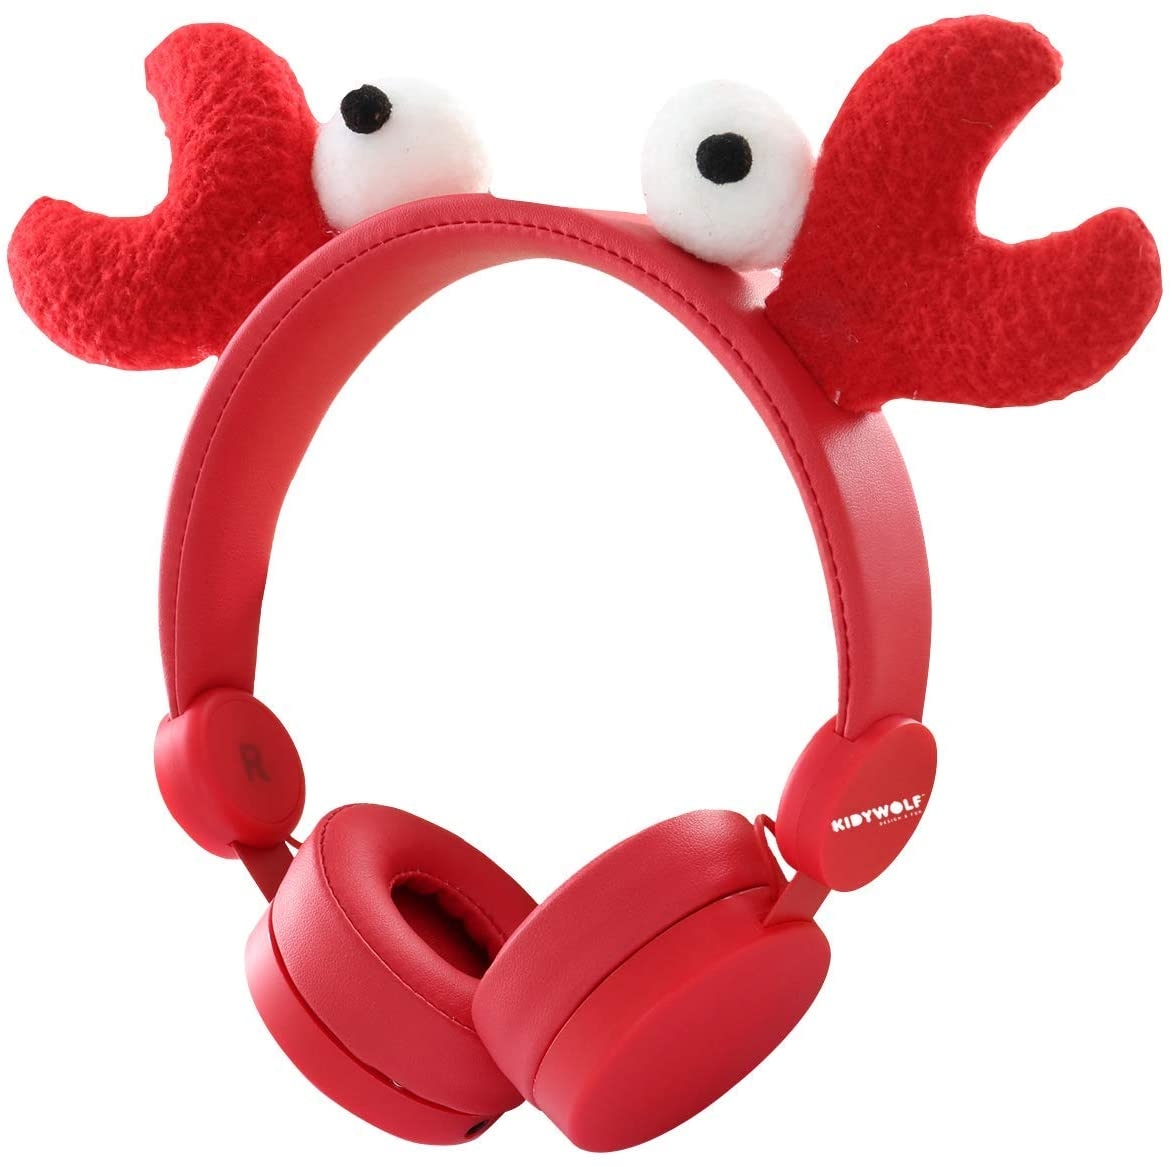 Casque audio Crabe